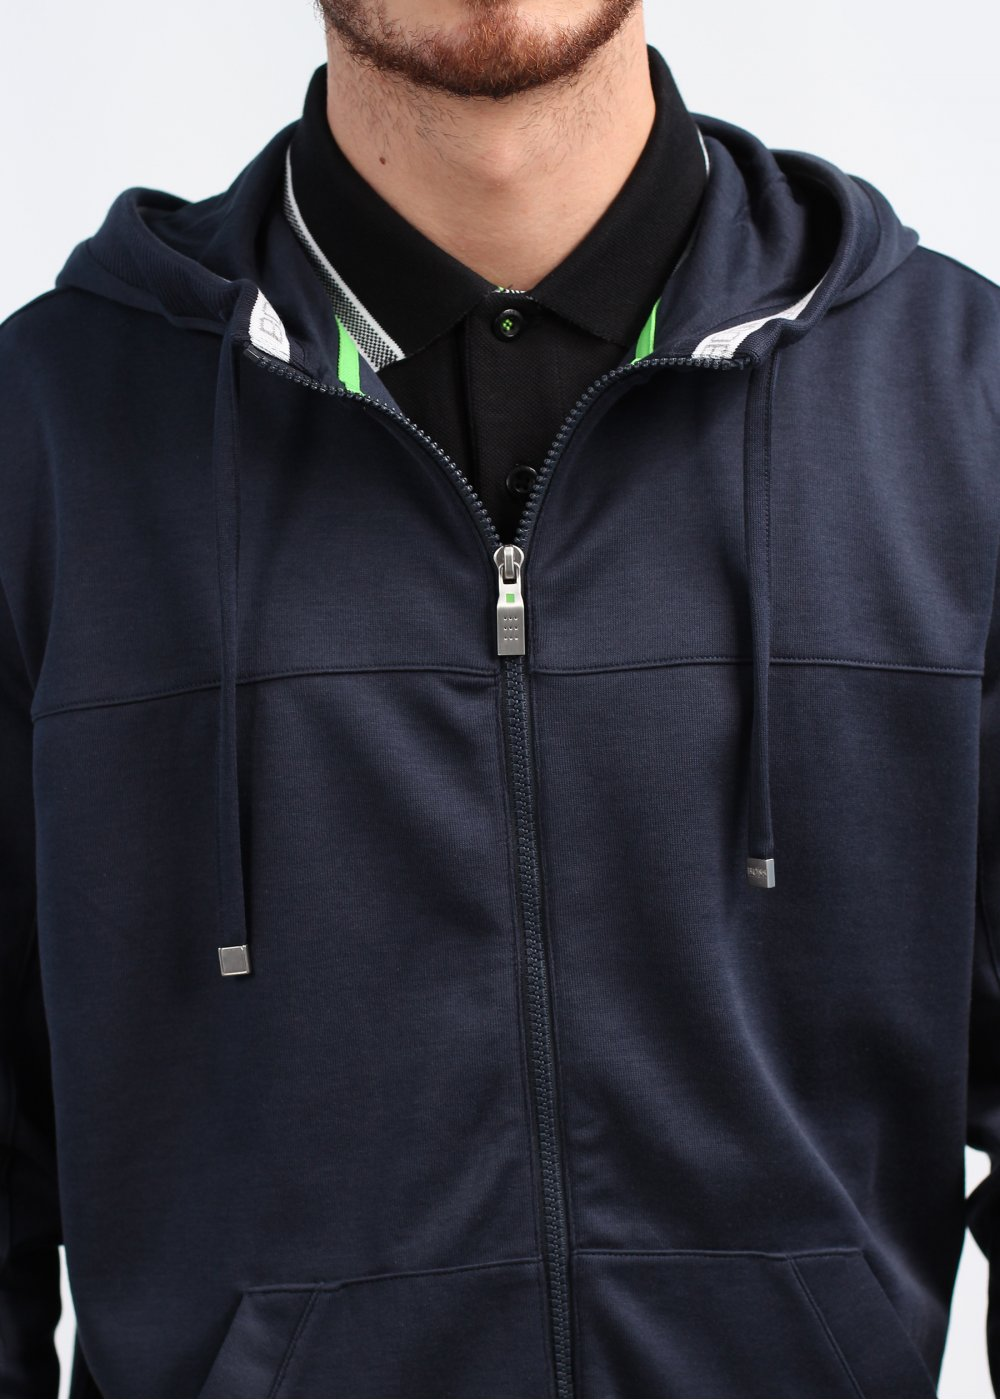 ad23cc7a0 Hugo Boss Green Saggy Zip Hoody - Navy